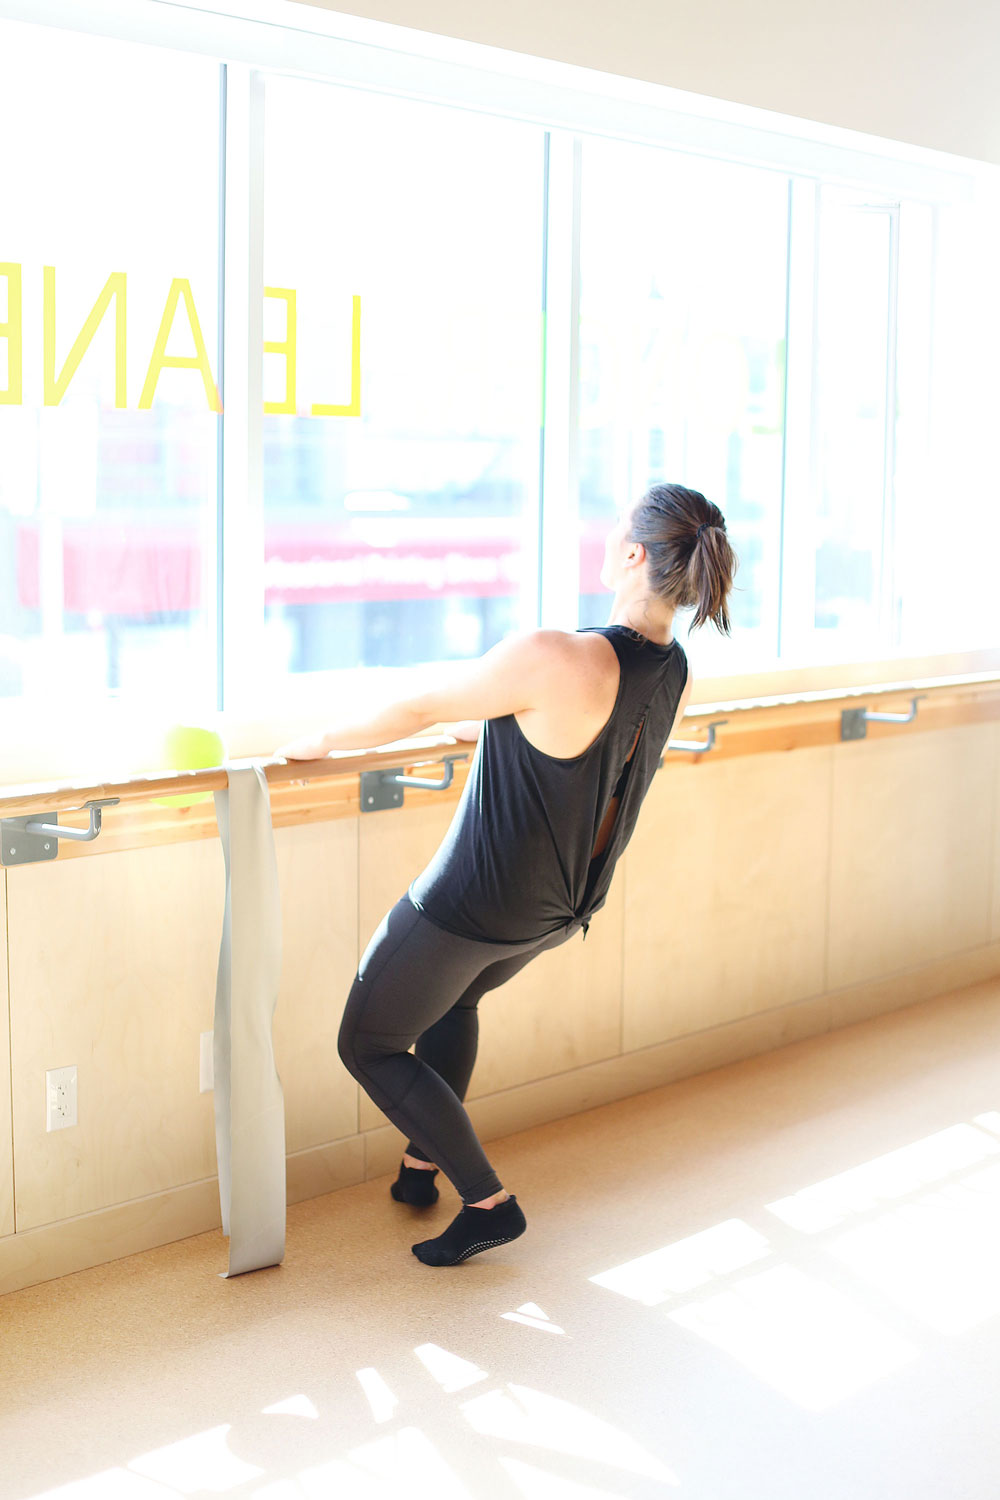 Barre workout for toned legs